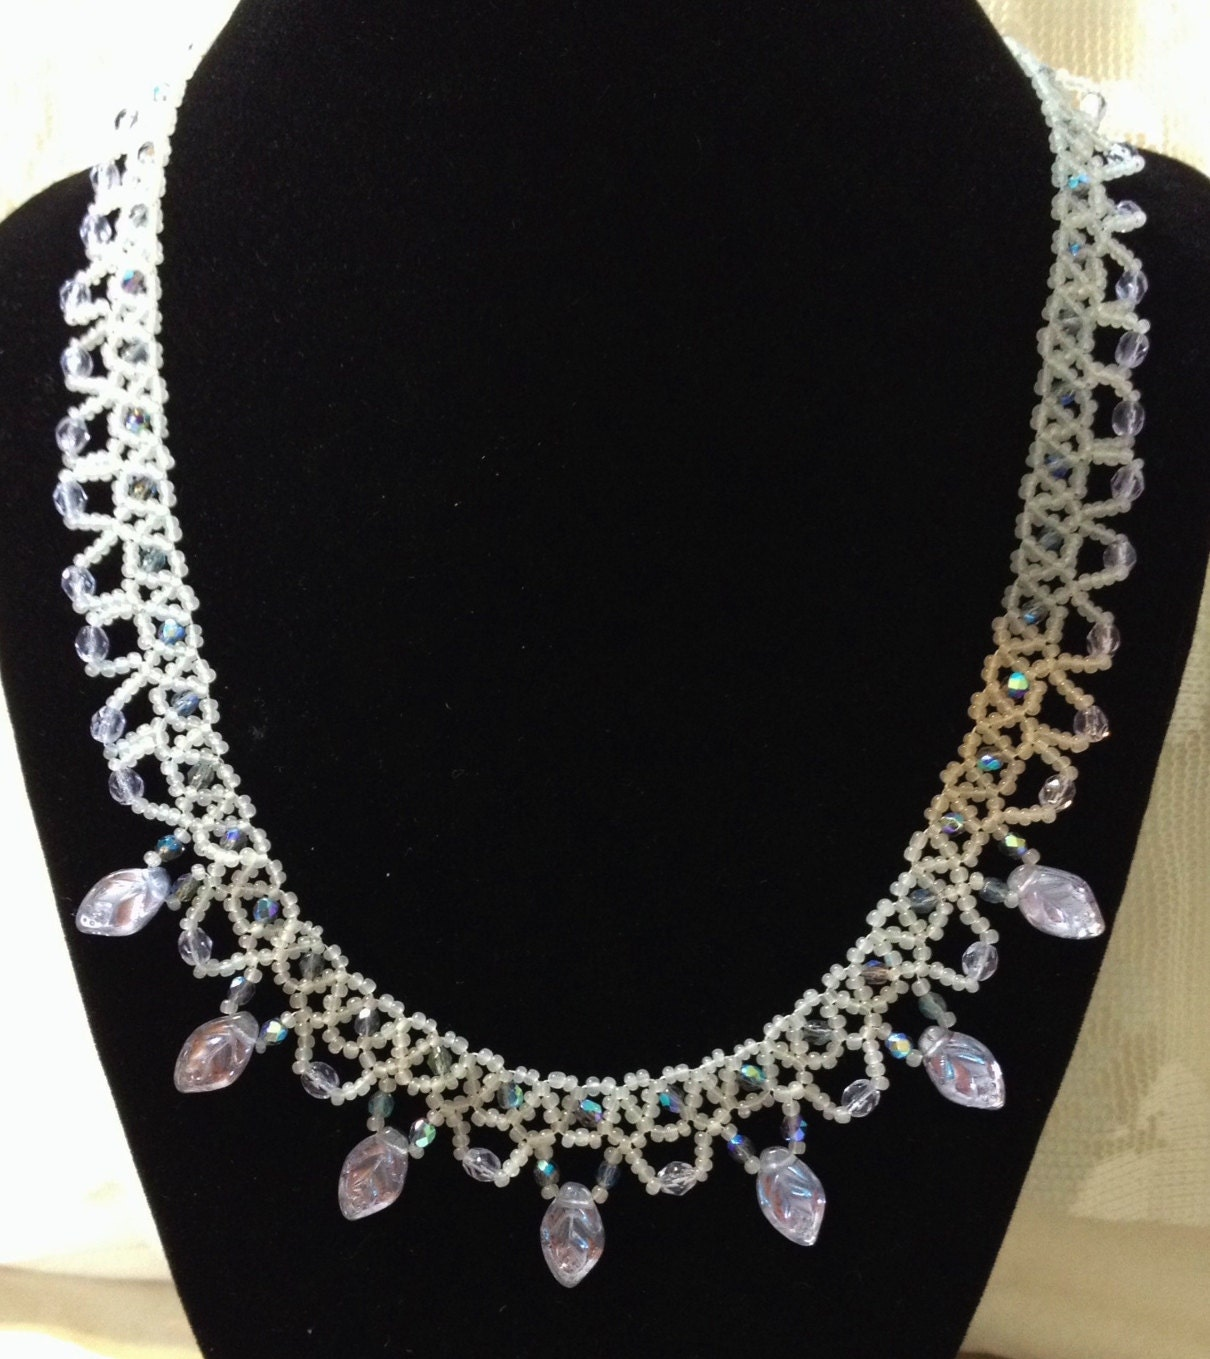 netted necklaces seed bead netting by